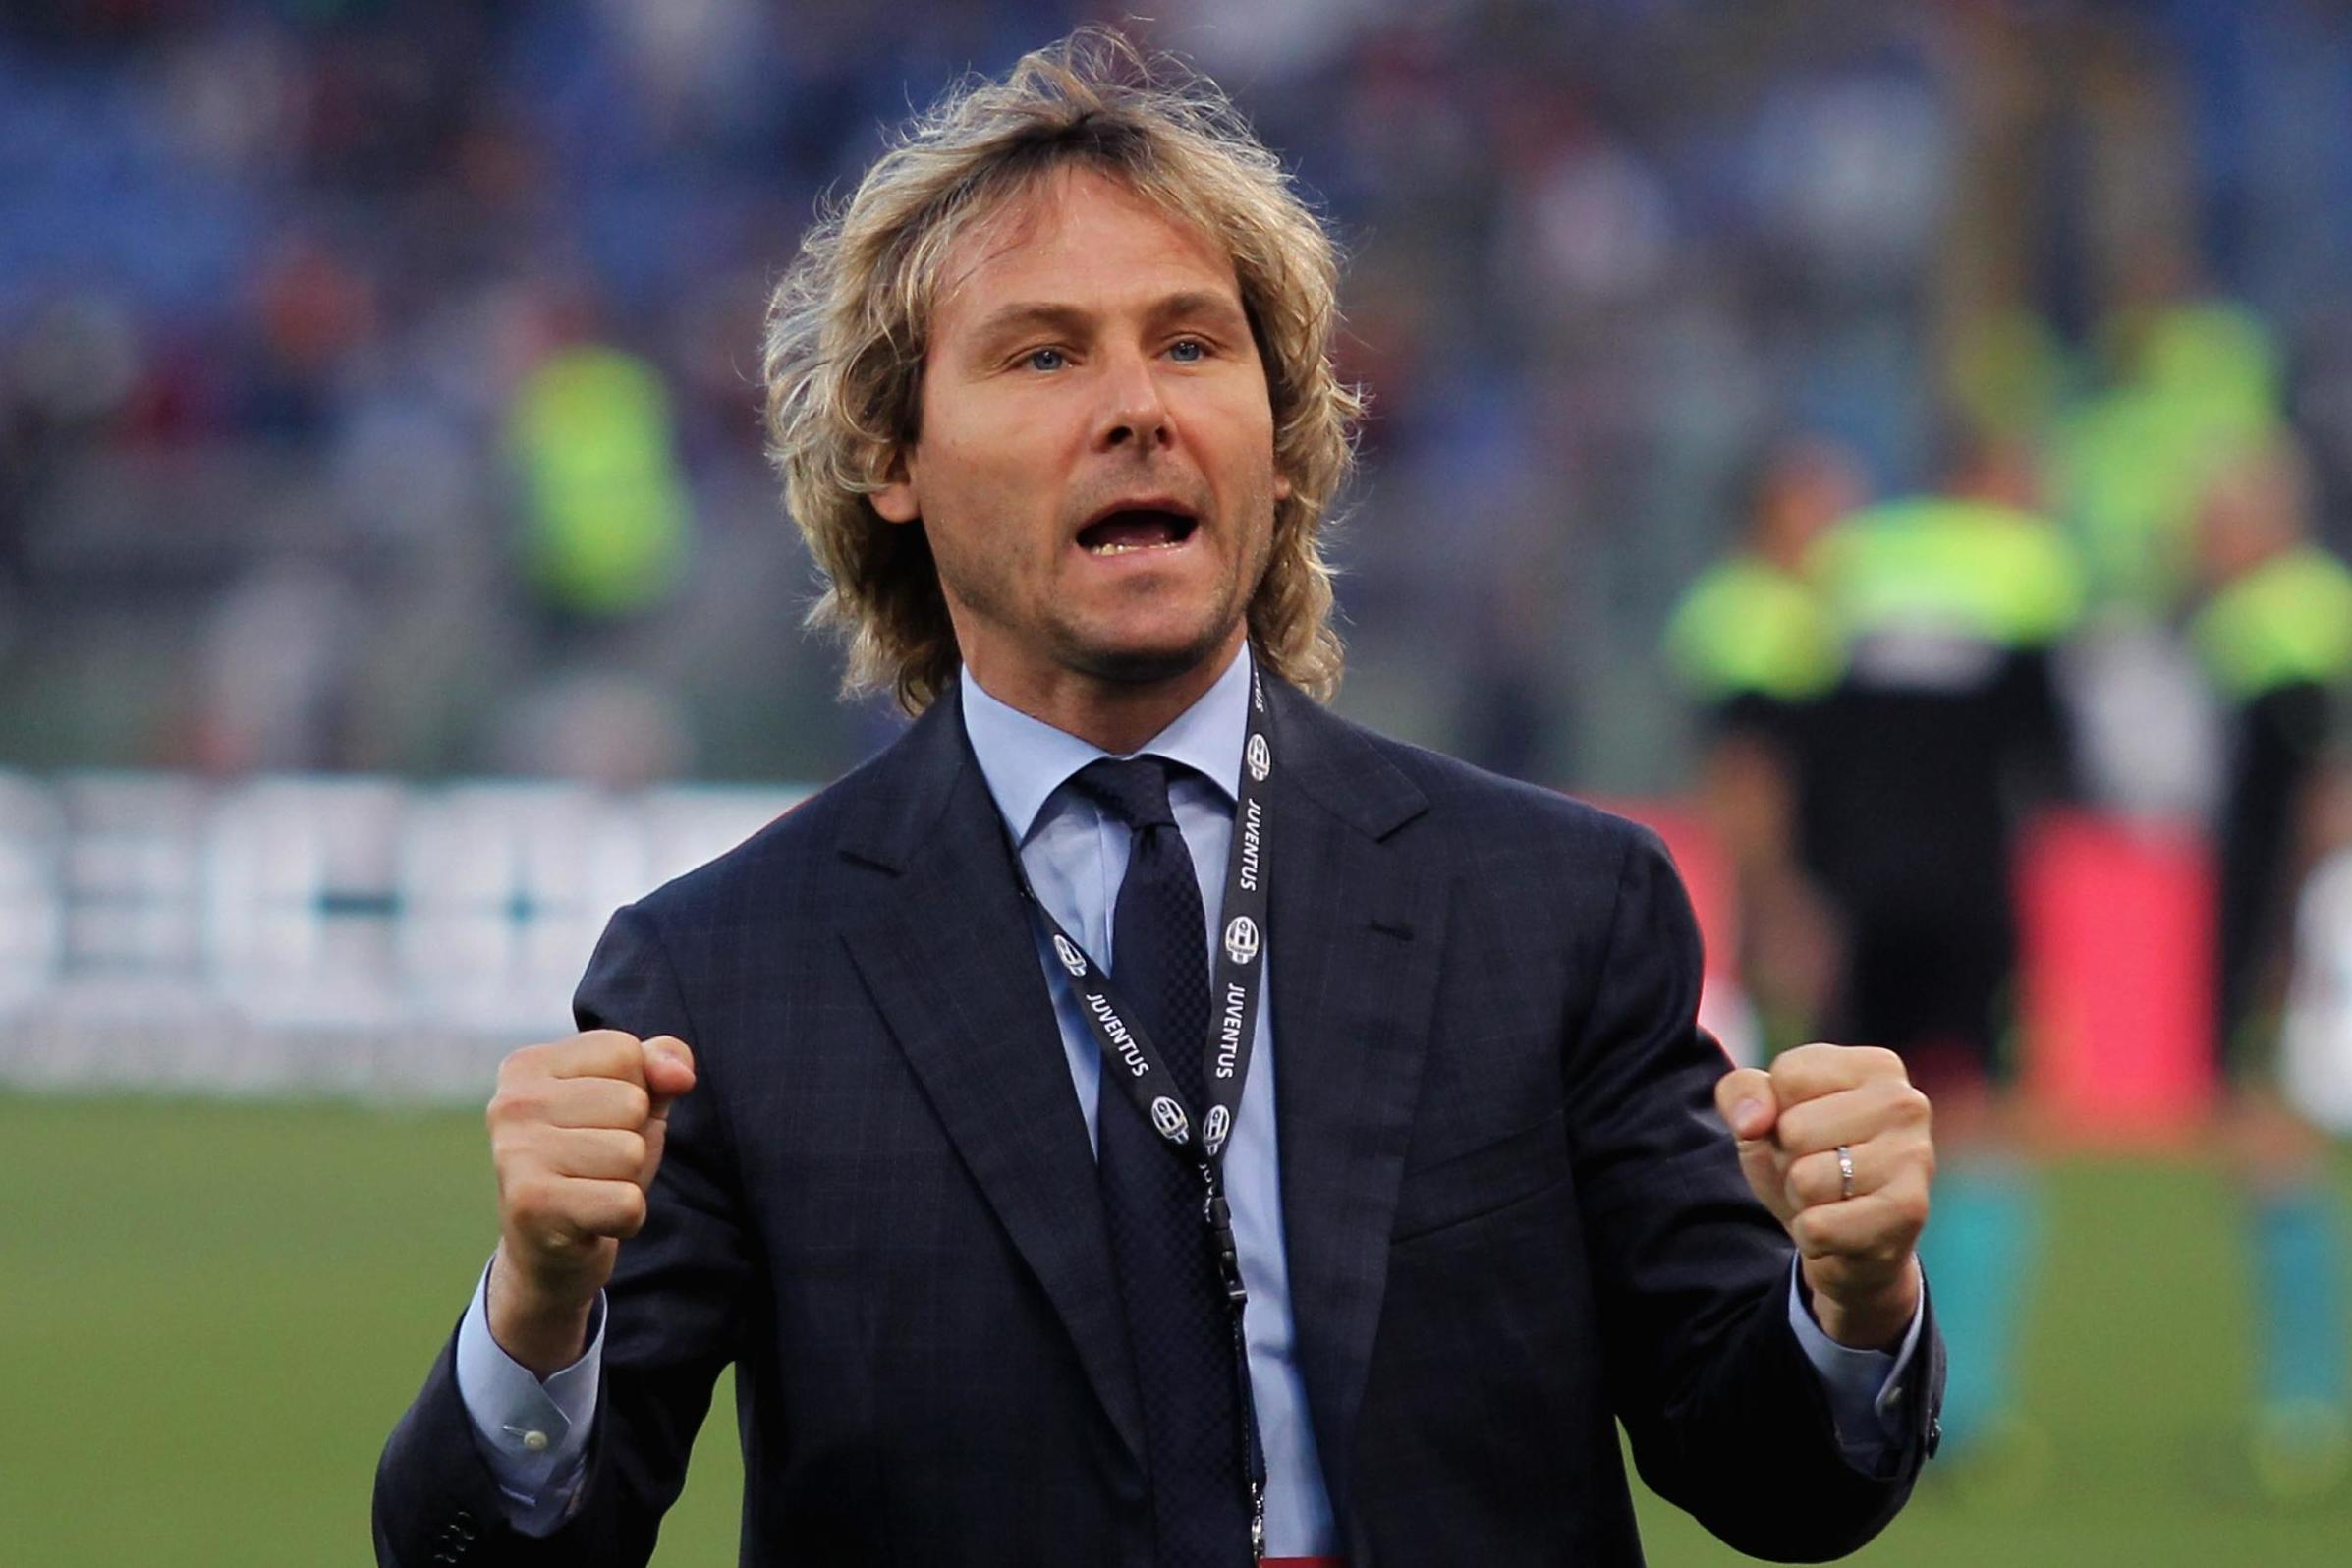 Pavel Nedved Ballon d'or 2003